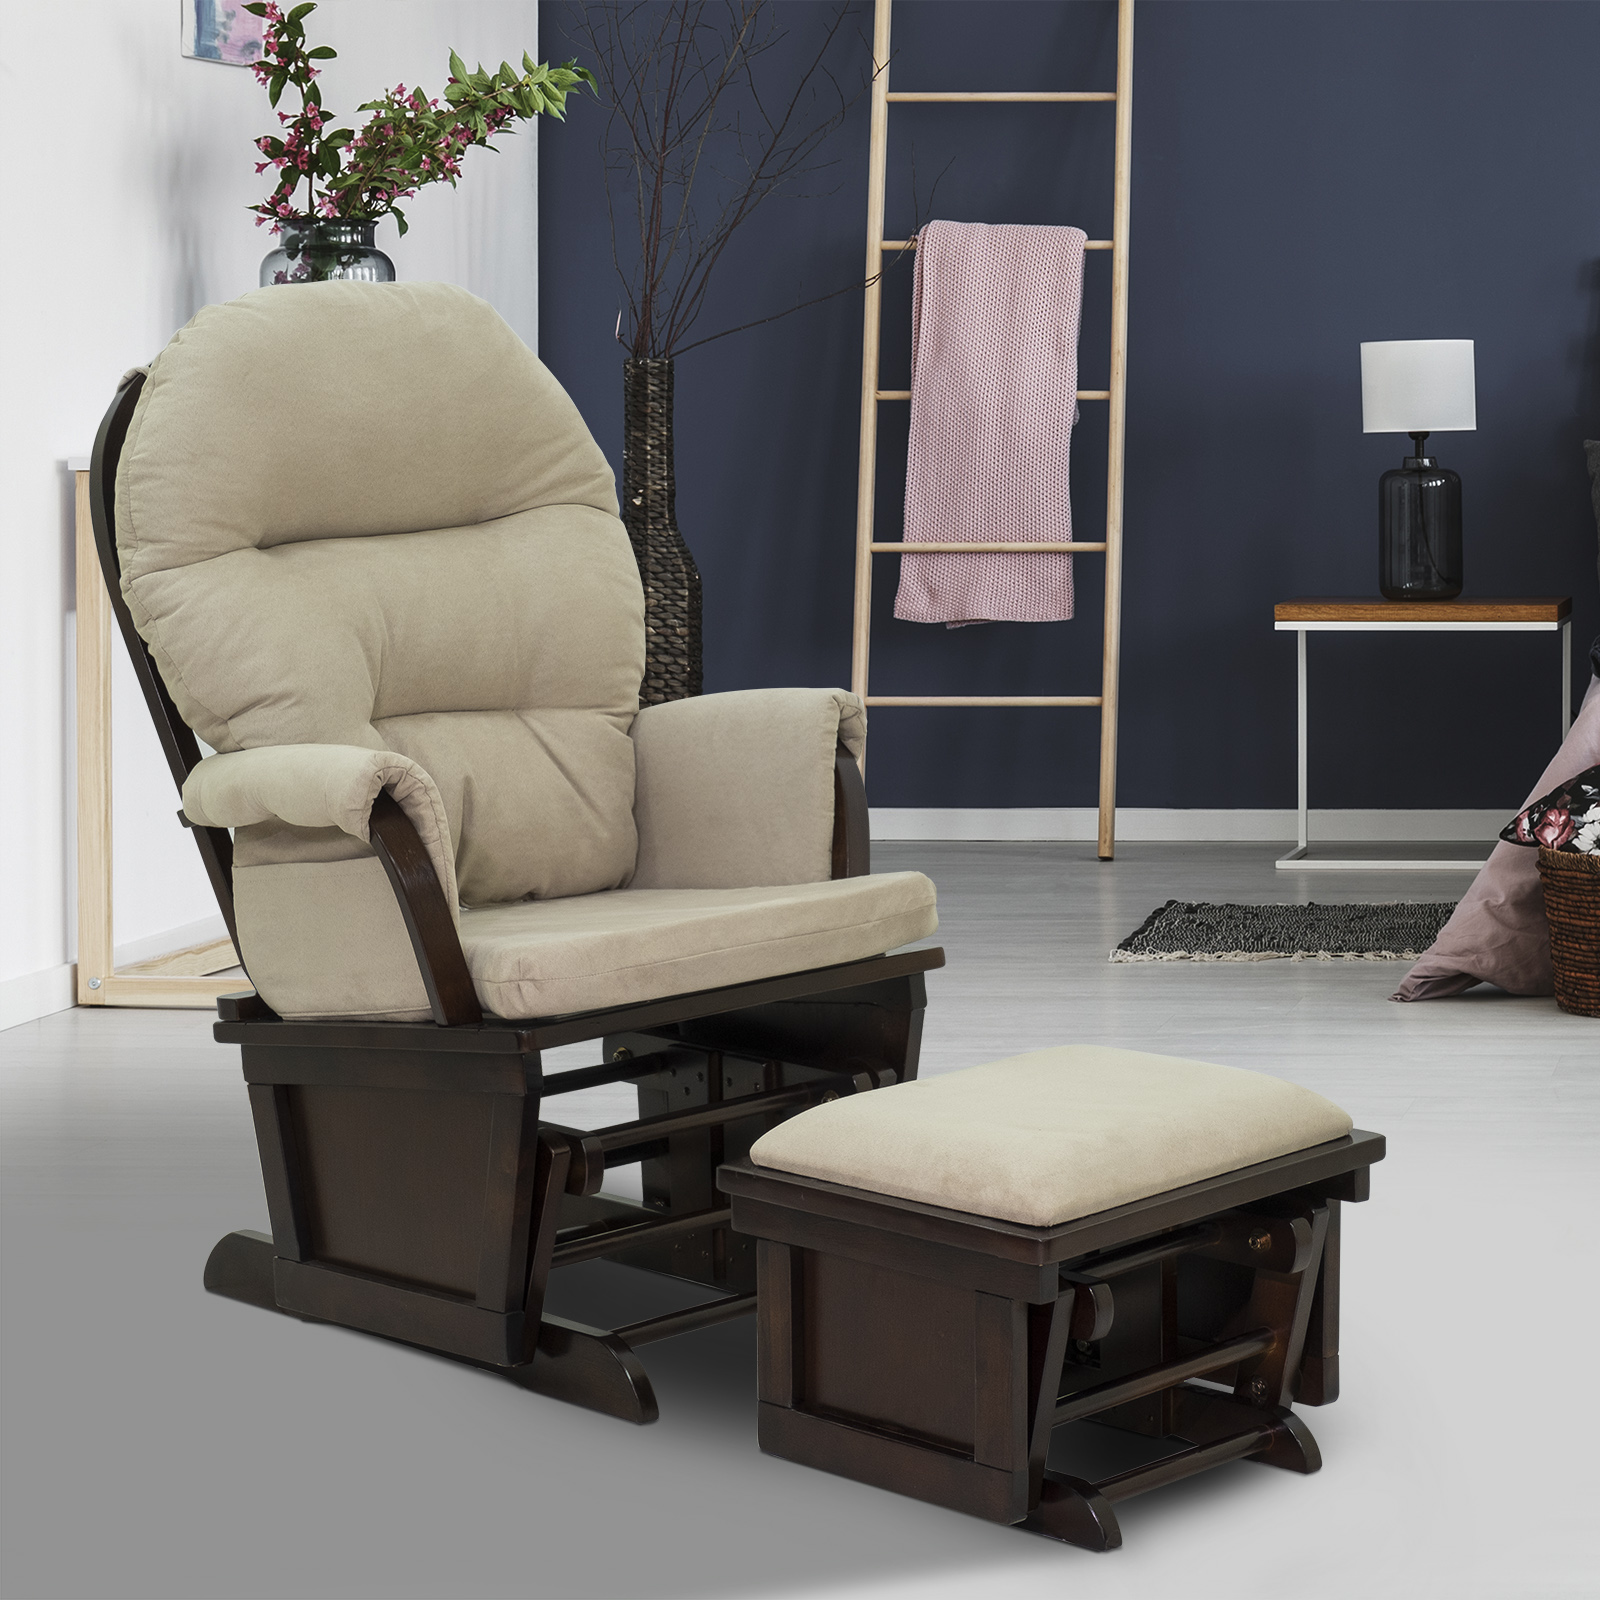 Image of: 2pc Nursery Glider Rocking Chair With Ottoman Set Suede Footrest Sofa 712190182236 Ebay